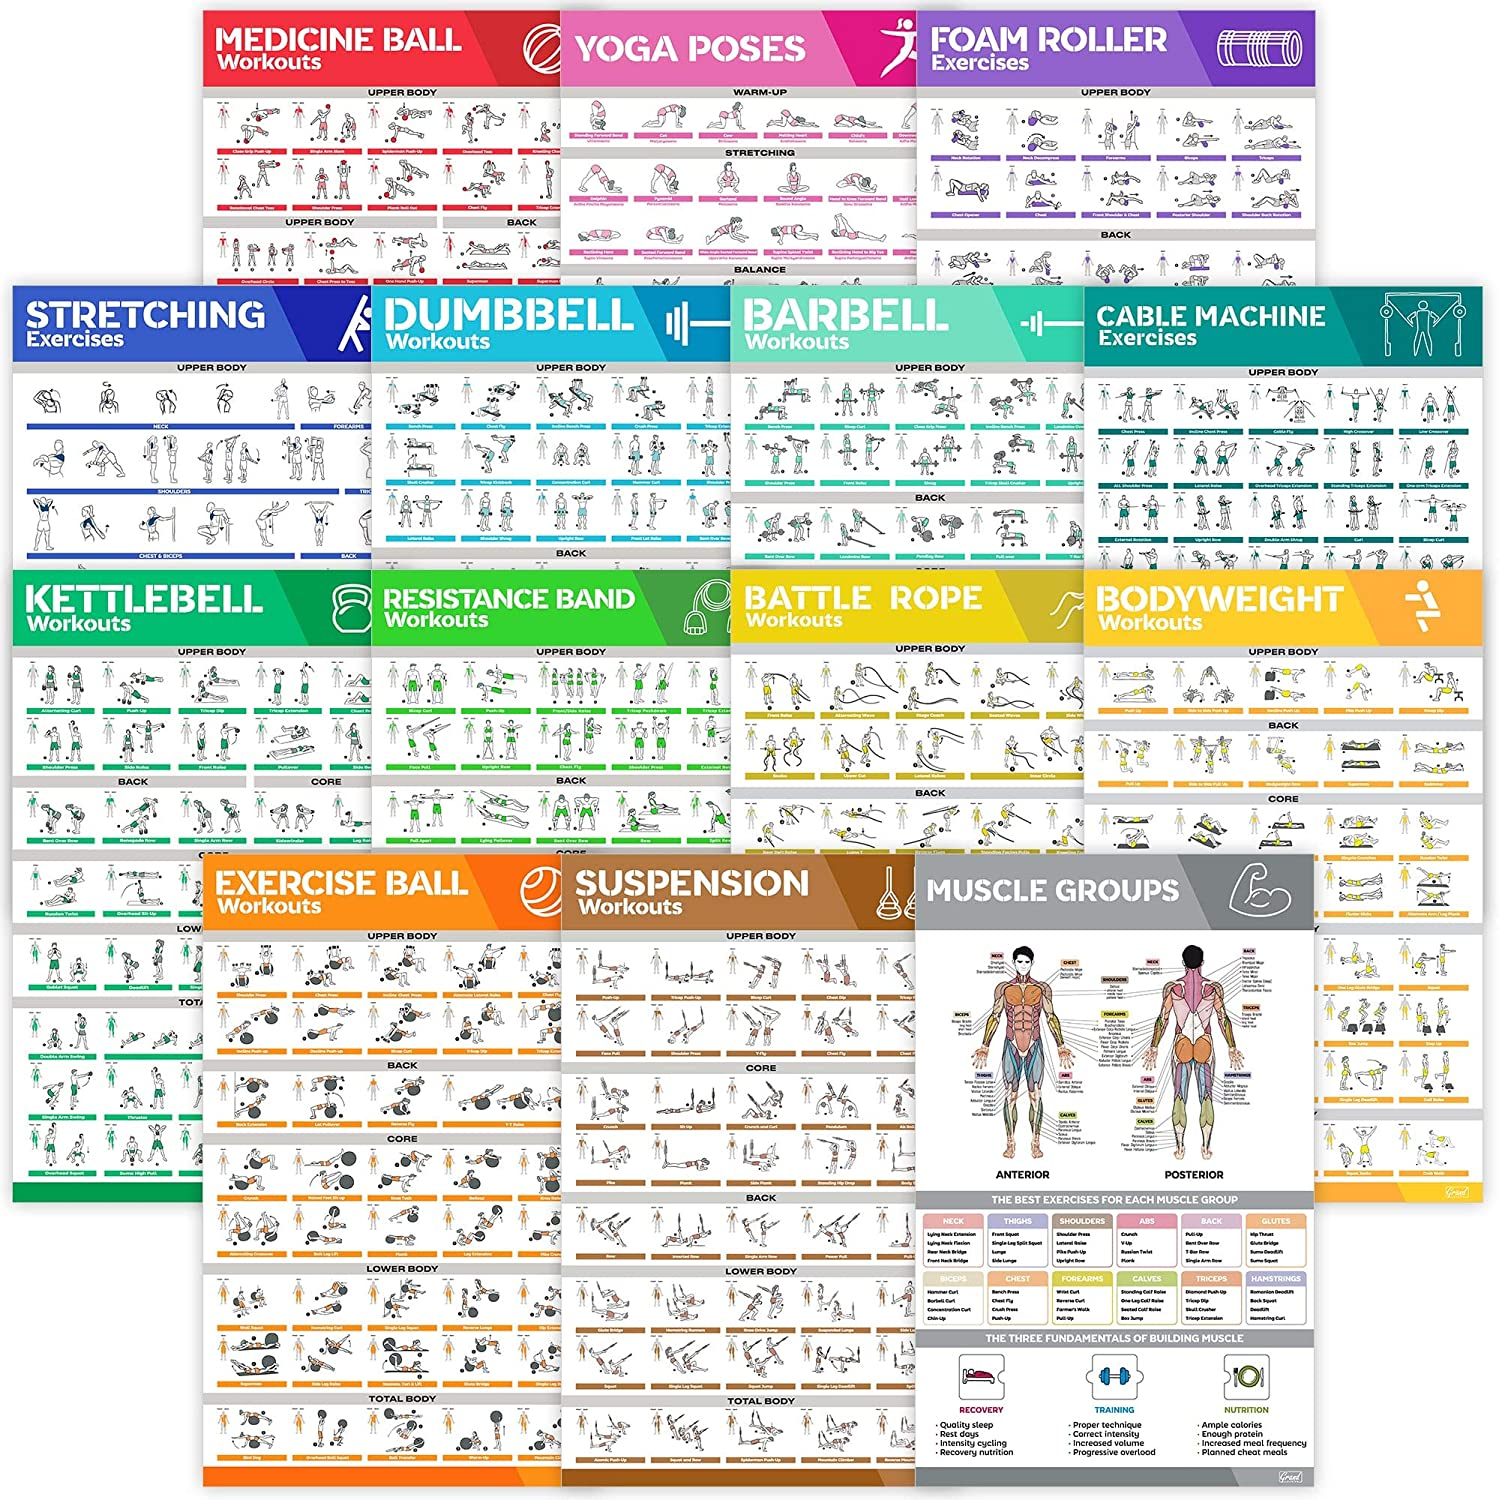 14-Pack Laminated Large Workout Poster Set - Perfect Workout Posters For Home Gym - Exercise Charts Incl. Dumbbell, Yoga Poses, Resistance Band, Kettlebell, Stretching & More Fitness Gym Posters